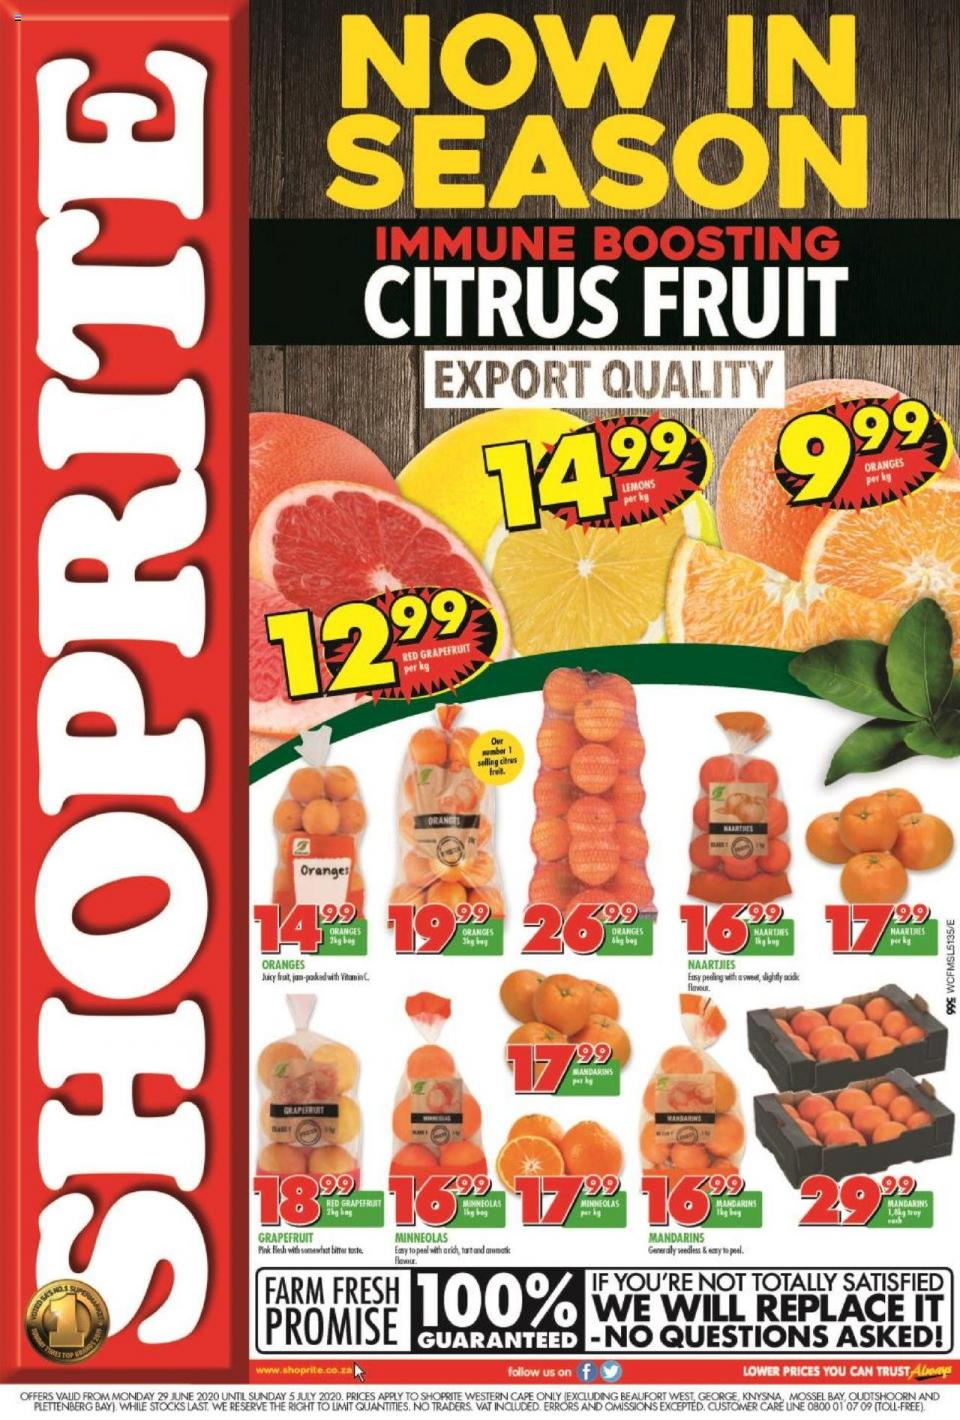 shoprite specials citrus fruit promotion 29 june 2020 western cape